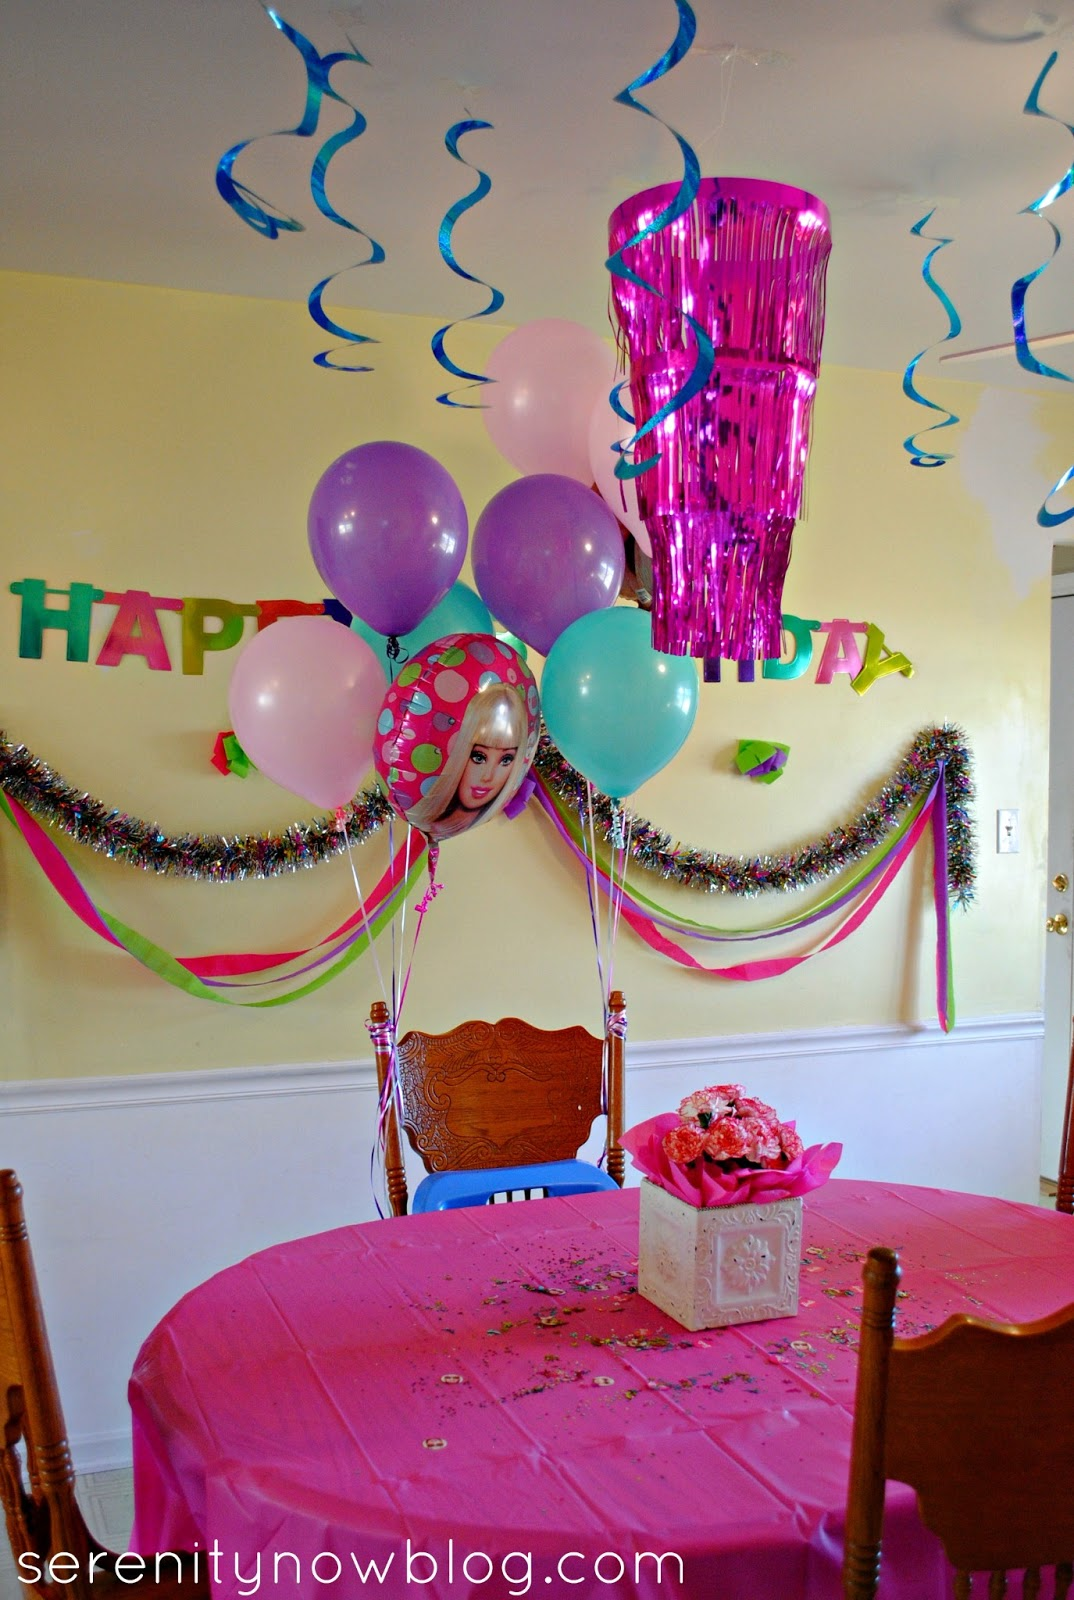 Barbie Birthday Party Decorations From Serenity Now Blog